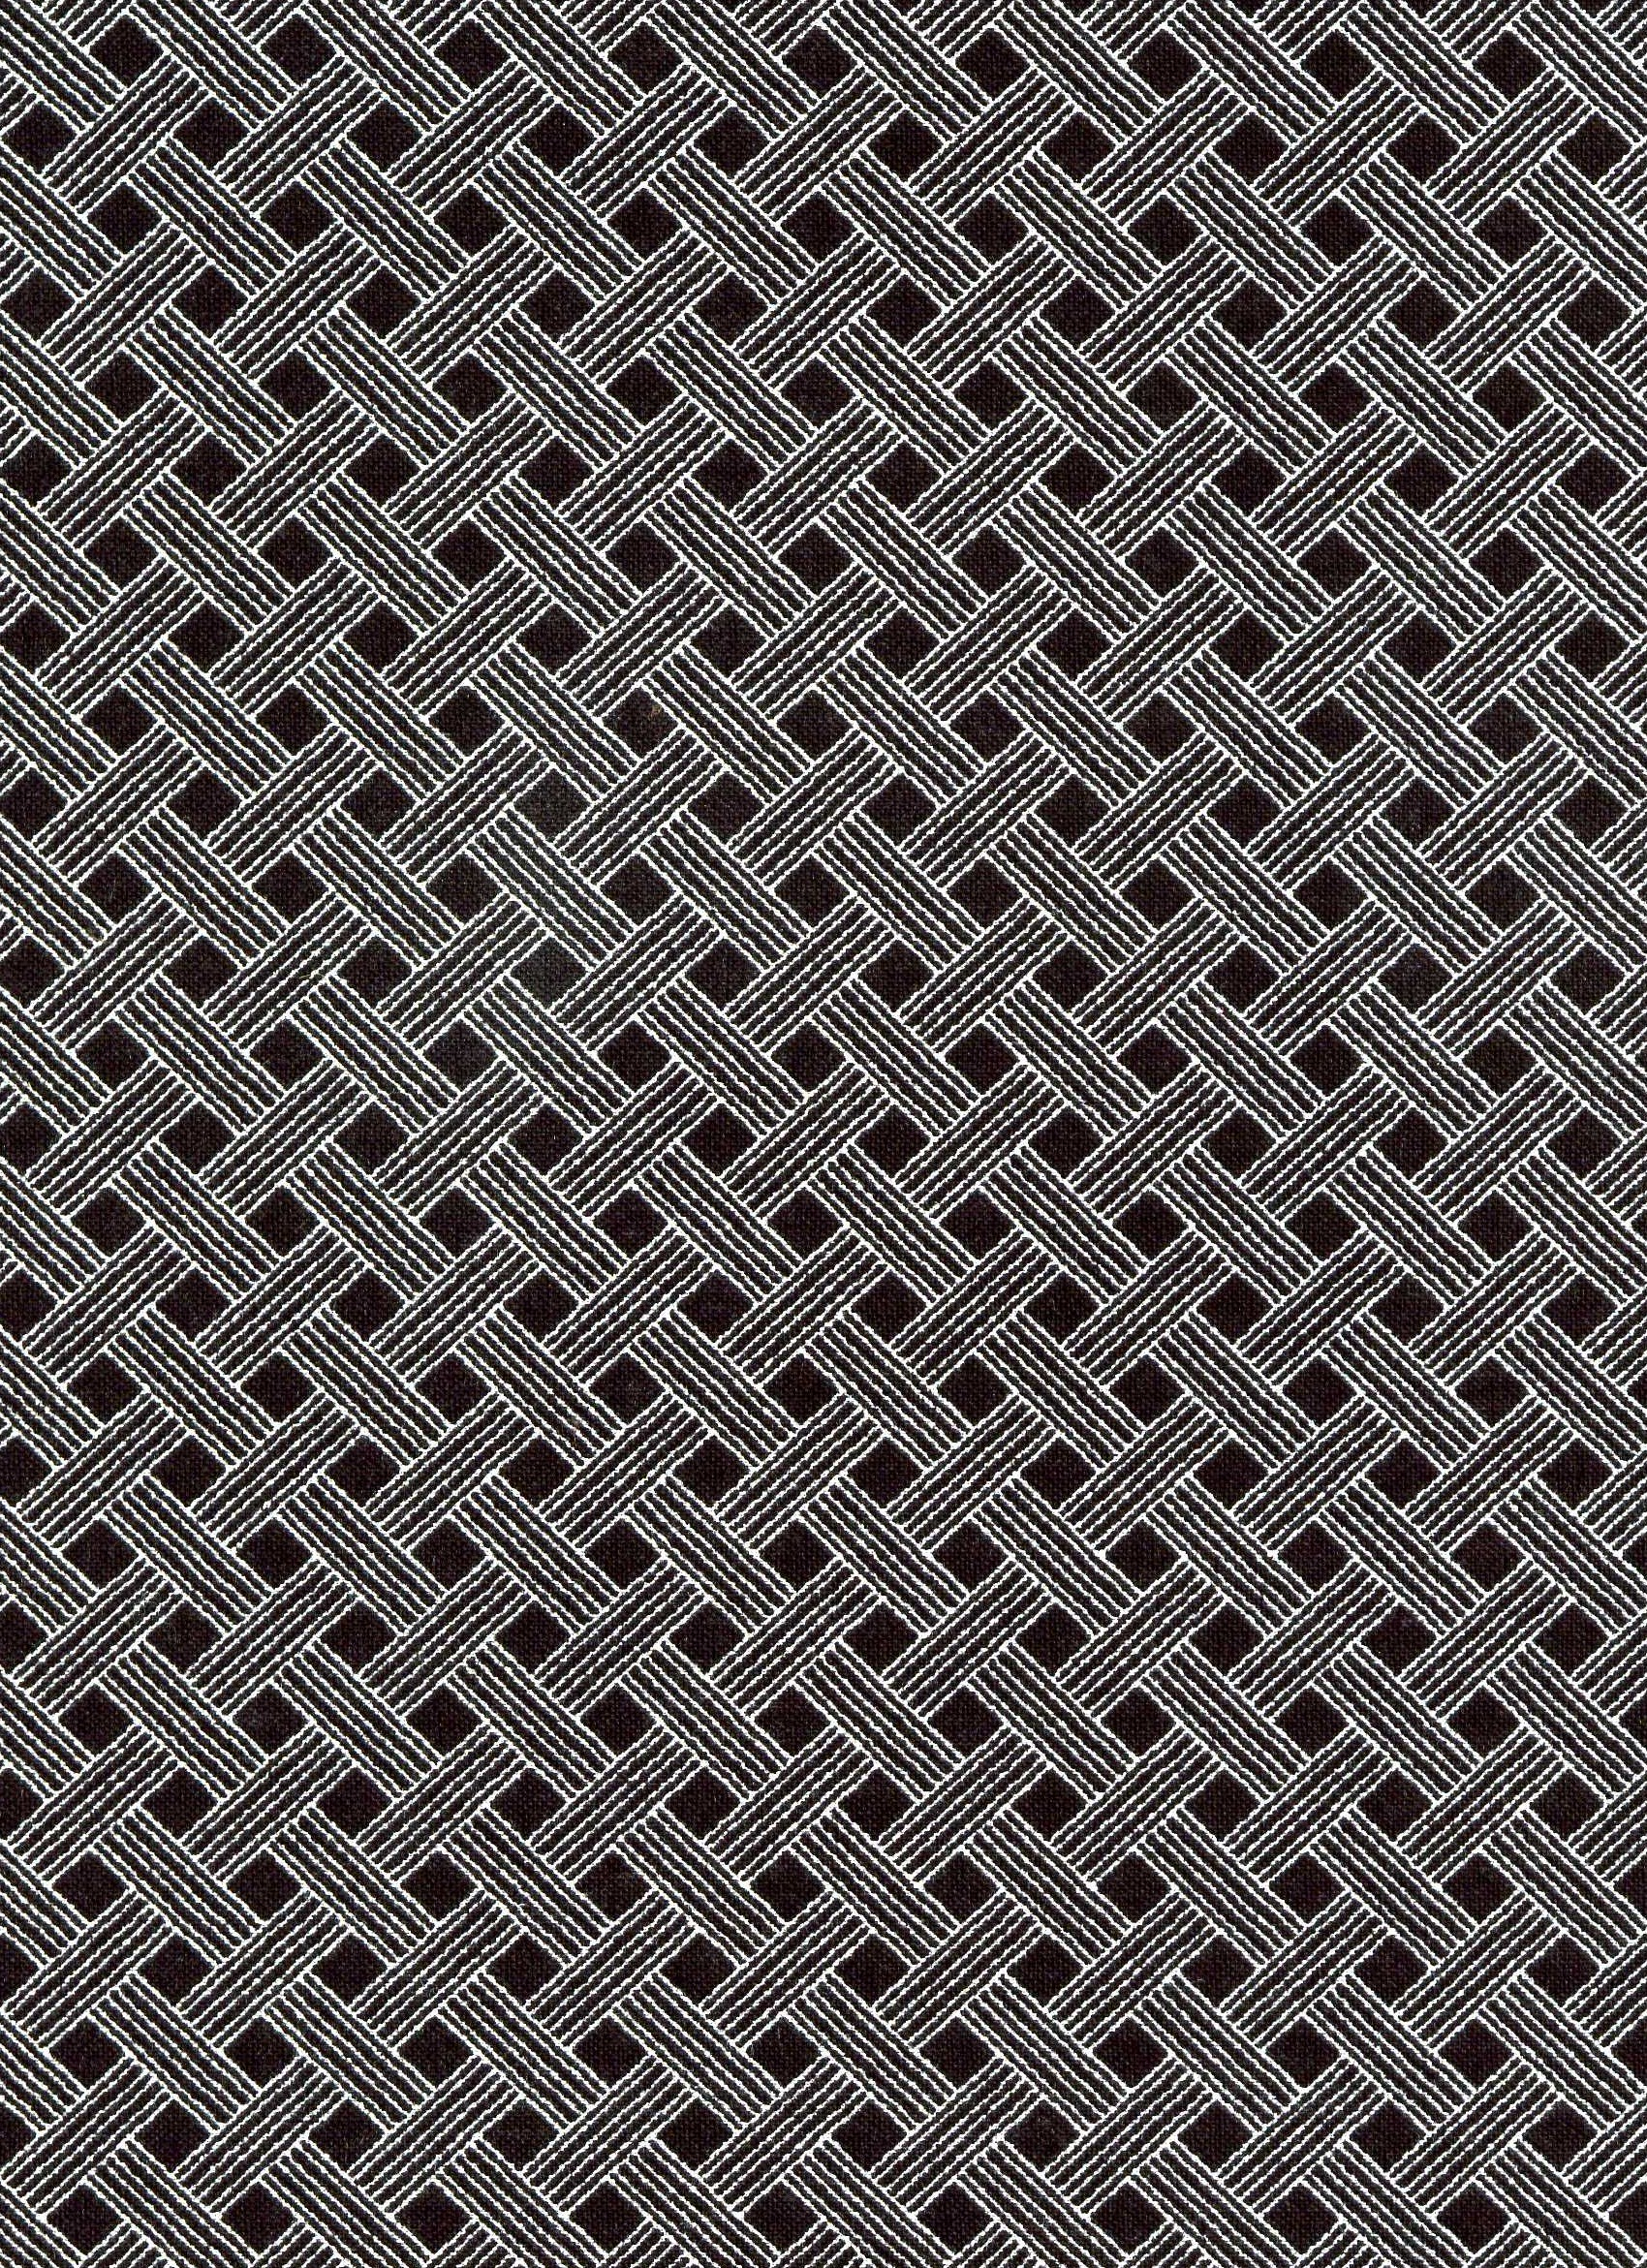 Black with White Basket Weave Pattern